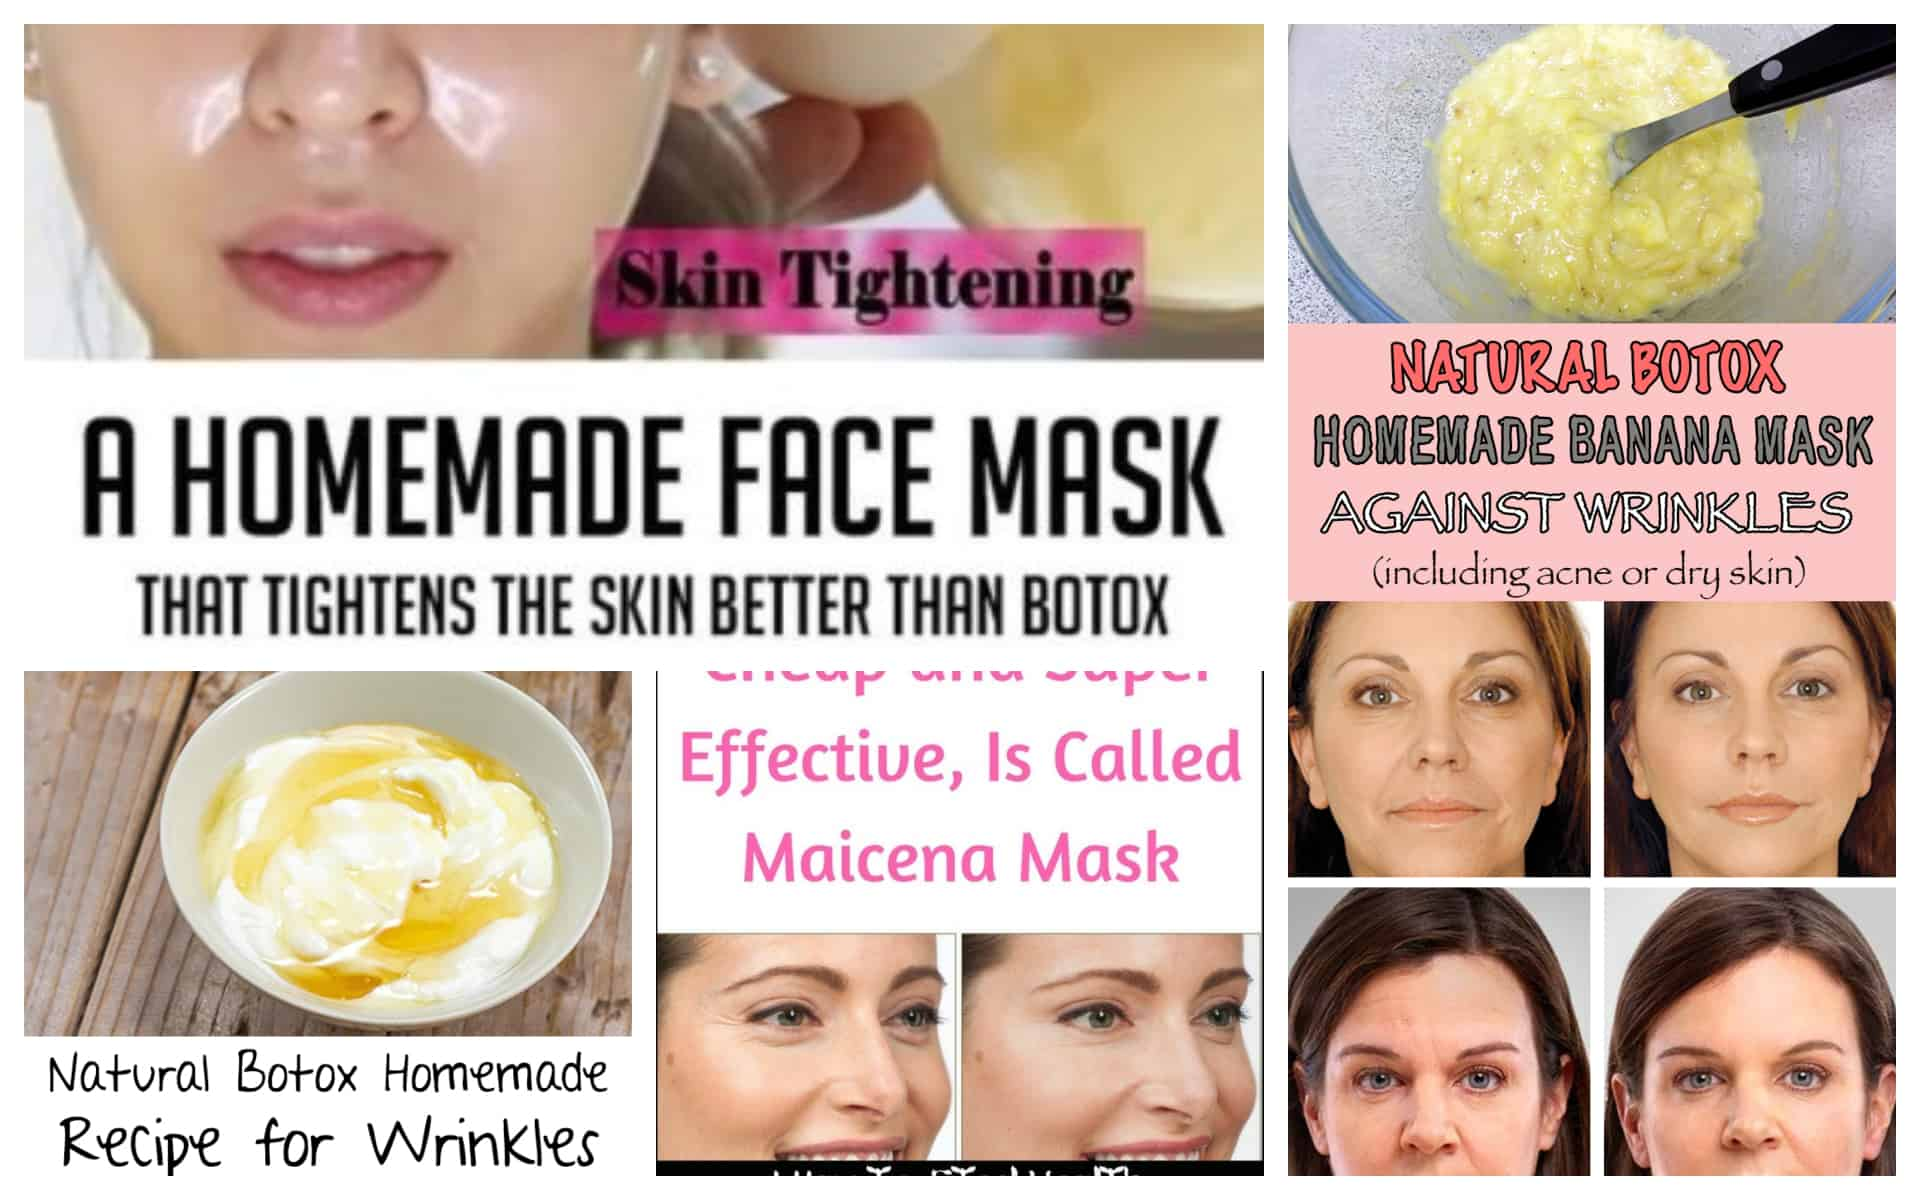 Homemade Botox Recipes That Will Make You Look Younger